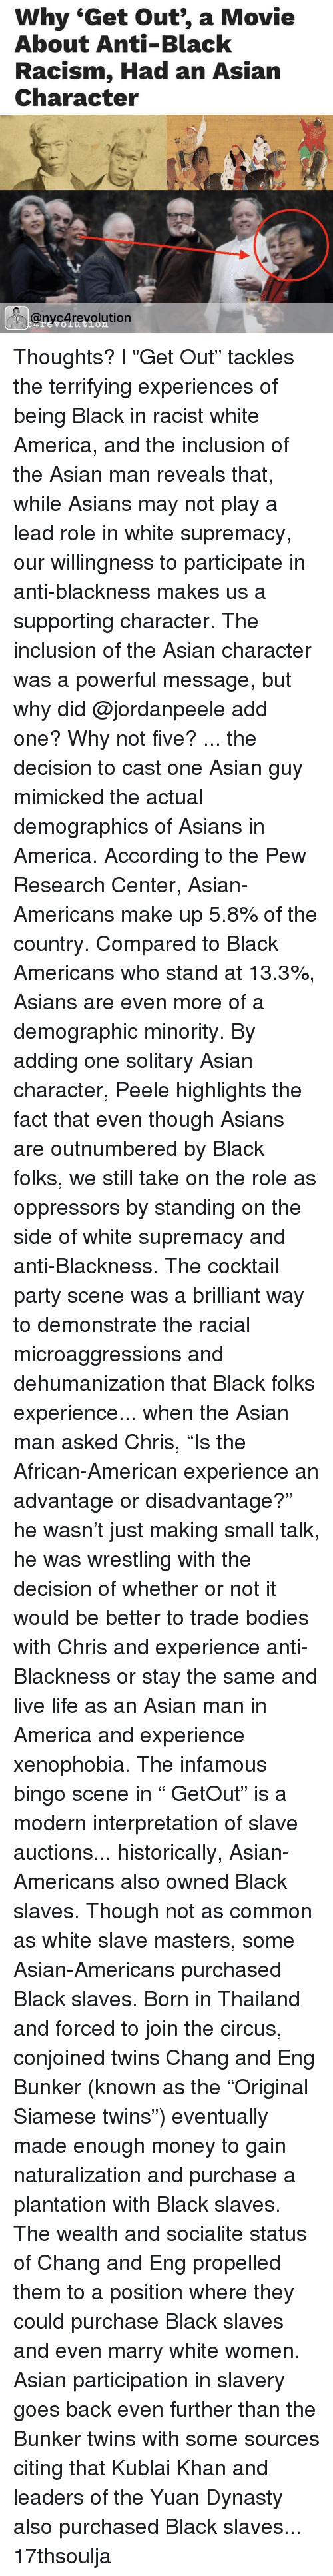 """asian guys: Why """"Get out, a Movie  About Anti-Black  Racism, Had an Asian  Character  @nycArevolution Thoughts? l """"Get Out"""" tackles the terrifying experiences of being Black in racist white America, and the inclusion of the Asian man reveals that, while Asians may not play a lead role in white supremacy, our willingness to participate in anti-blackness makes us a supporting character. The inclusion of the Asian character was a powerful message, but why did @jordanpeele add one? Why not five? ... the decision to cast one Asian guy mimicked the actual demographics of Asians in America. According to the Pew Research Center, Asian-Americans make up 5.8% of the country. Compared to Black Americans who stand at 13.3%, Asians are even more of a demographic minority. By adding one solitary Asian character, Peele highlights the fact that even though Asians are outnumbered by Black folks, we still take on the role as oppressors by standing on the side of white supremacy and anti-Blackness. The cocktail party scene was a brilliant way to demonstrate the racial microaggressions and dehumanization that Black folks experience... when the Asian man asked Chris, """"Is the African-American experience an advantage or disadvantage?"""" he wasn't just making small talk, he was wrestling with the decision of whether or not it would be better to trade bodies with Chris and experience anti-Blackness or stay the same and live life as an Asian man in America and experience xenophobia. The infamous bingo scene in """" GetOut"""" is a modern interpretation of slave auctions... historically, Asian-Americans also owned Black slaves. Though not as common as white slave masters, some Asian-Americans purchased Black slaves. Born in Thailand and forced to join the circus, conjoined twins Chang and Eng Bunker (known as the """"Original Siamese twins"""") eventually made enough money to gain naturalization and purchase a plantation with Black slaves. The wealth and socialite status of Chang and Eng propelled them to """